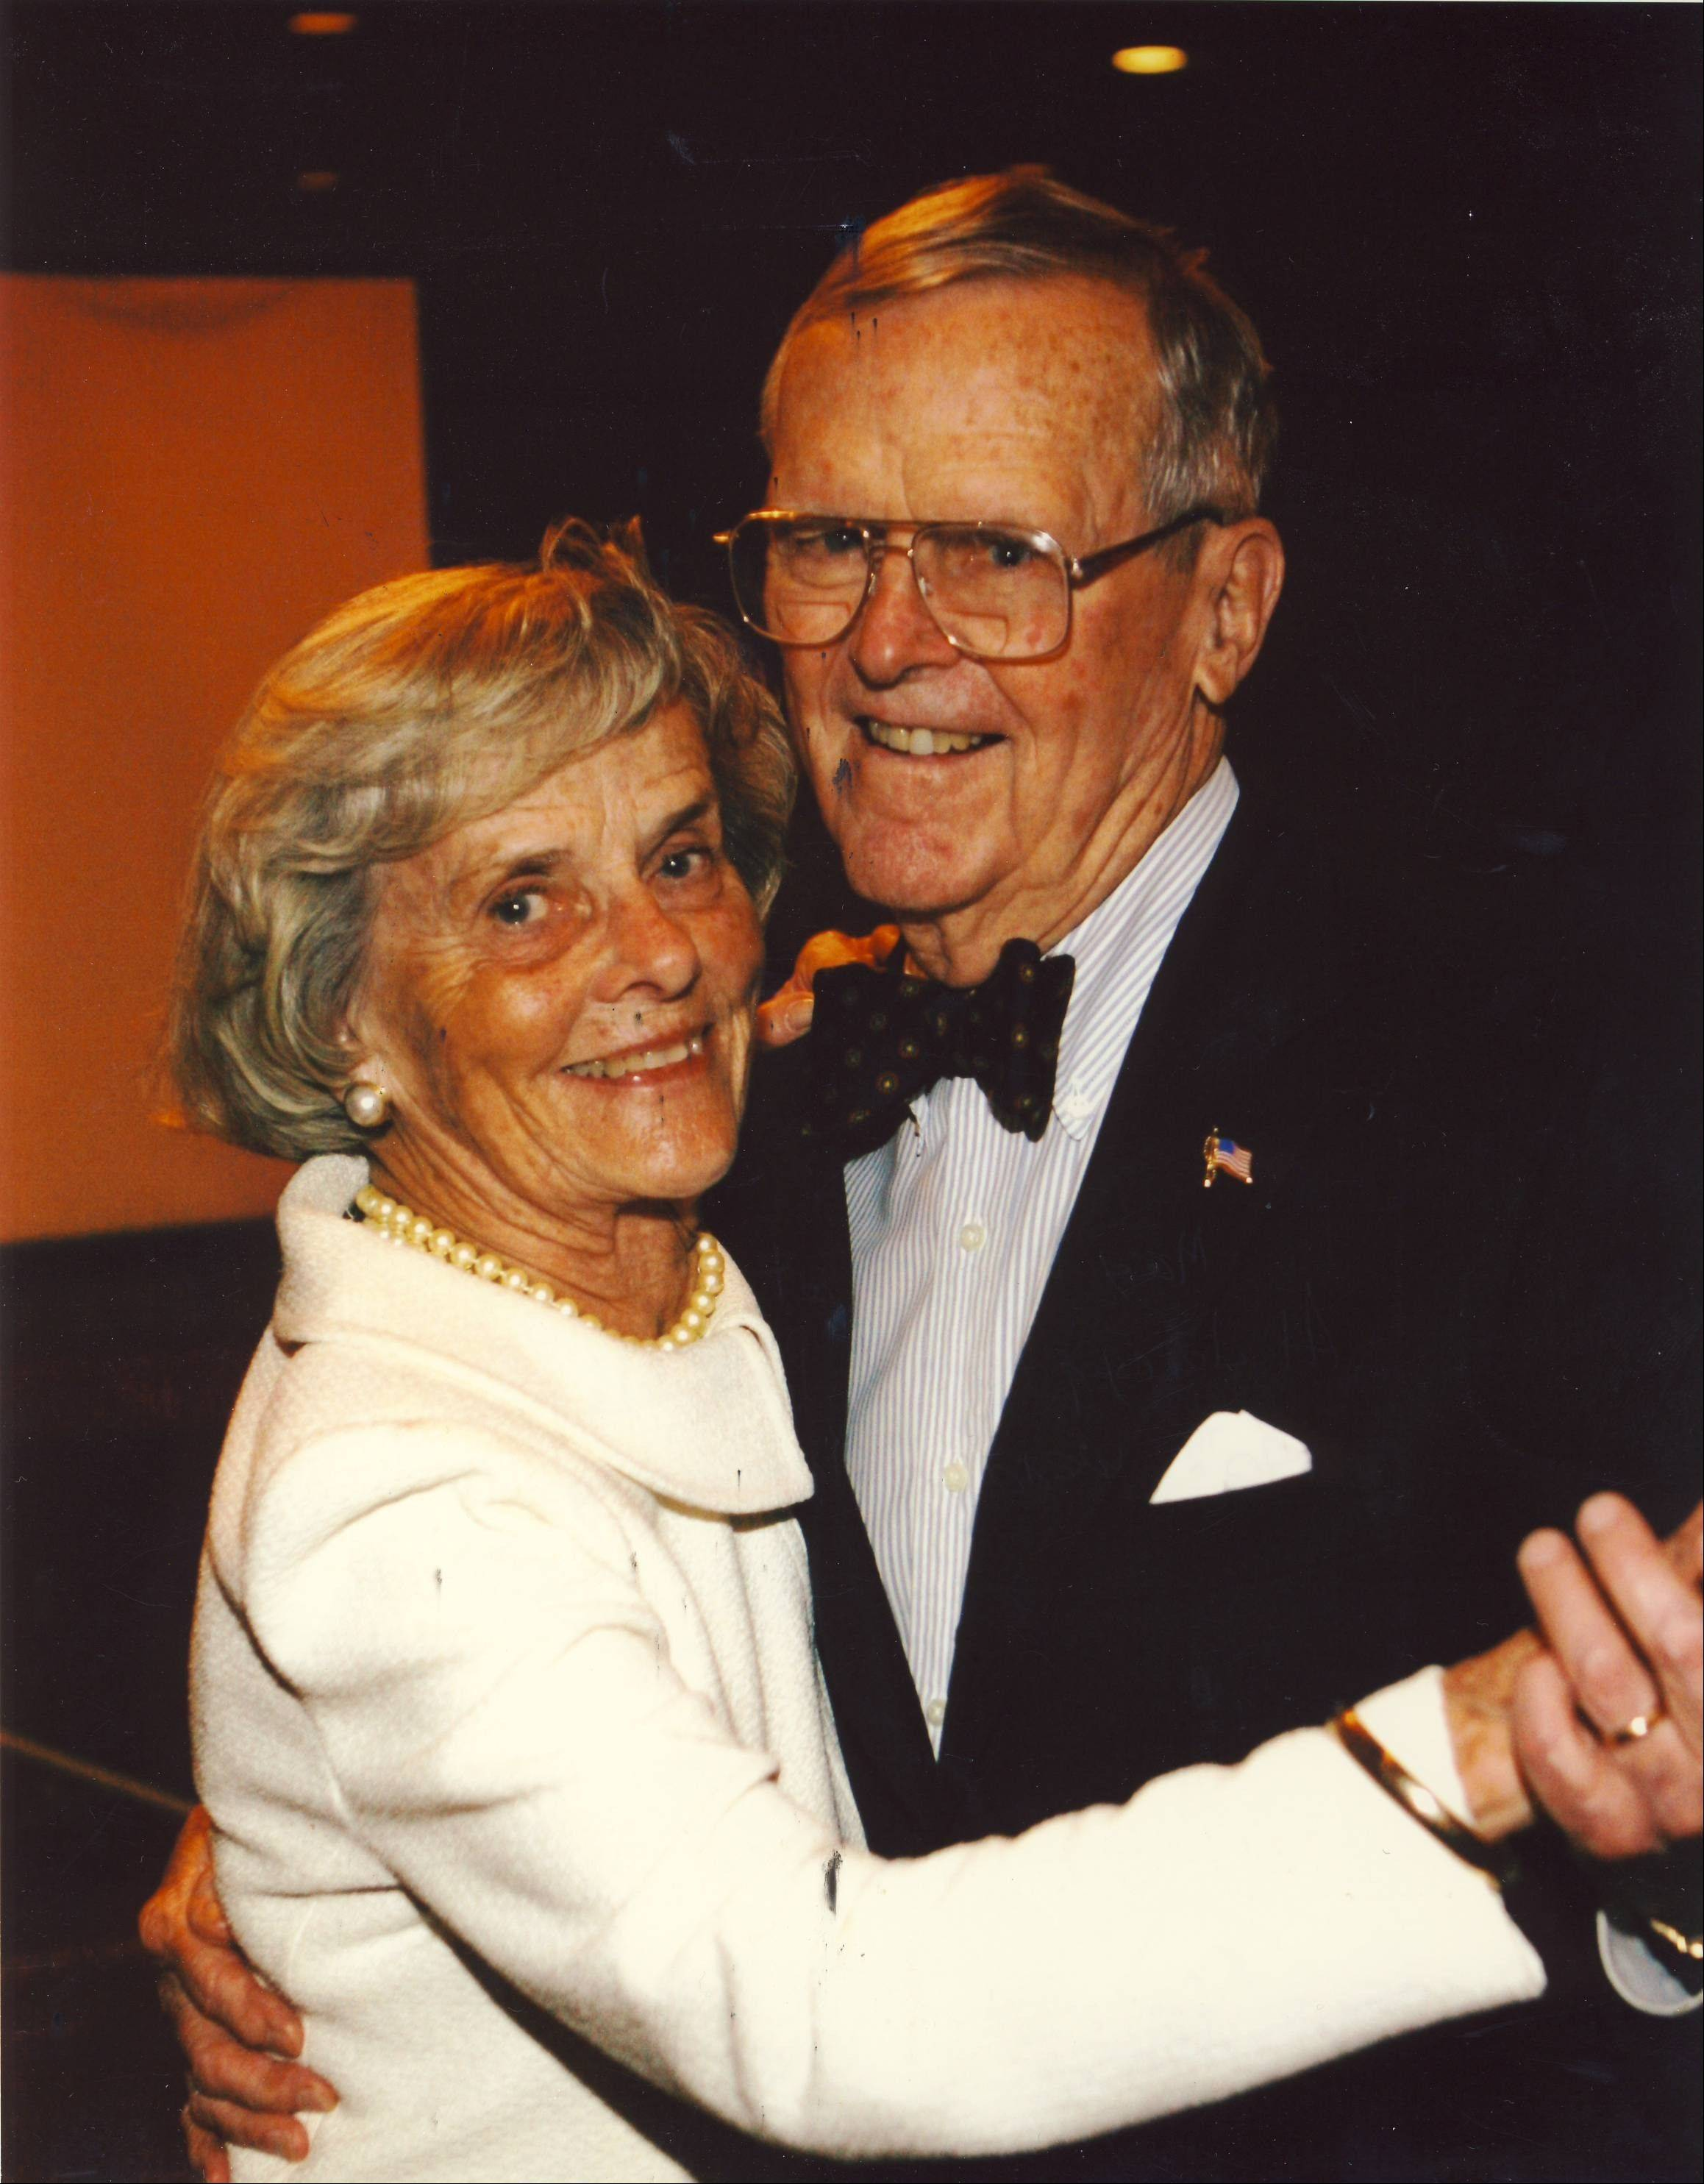 Jim and Marie Gallagher were honored at Clearbrook's 2011 Shining Star Ball.